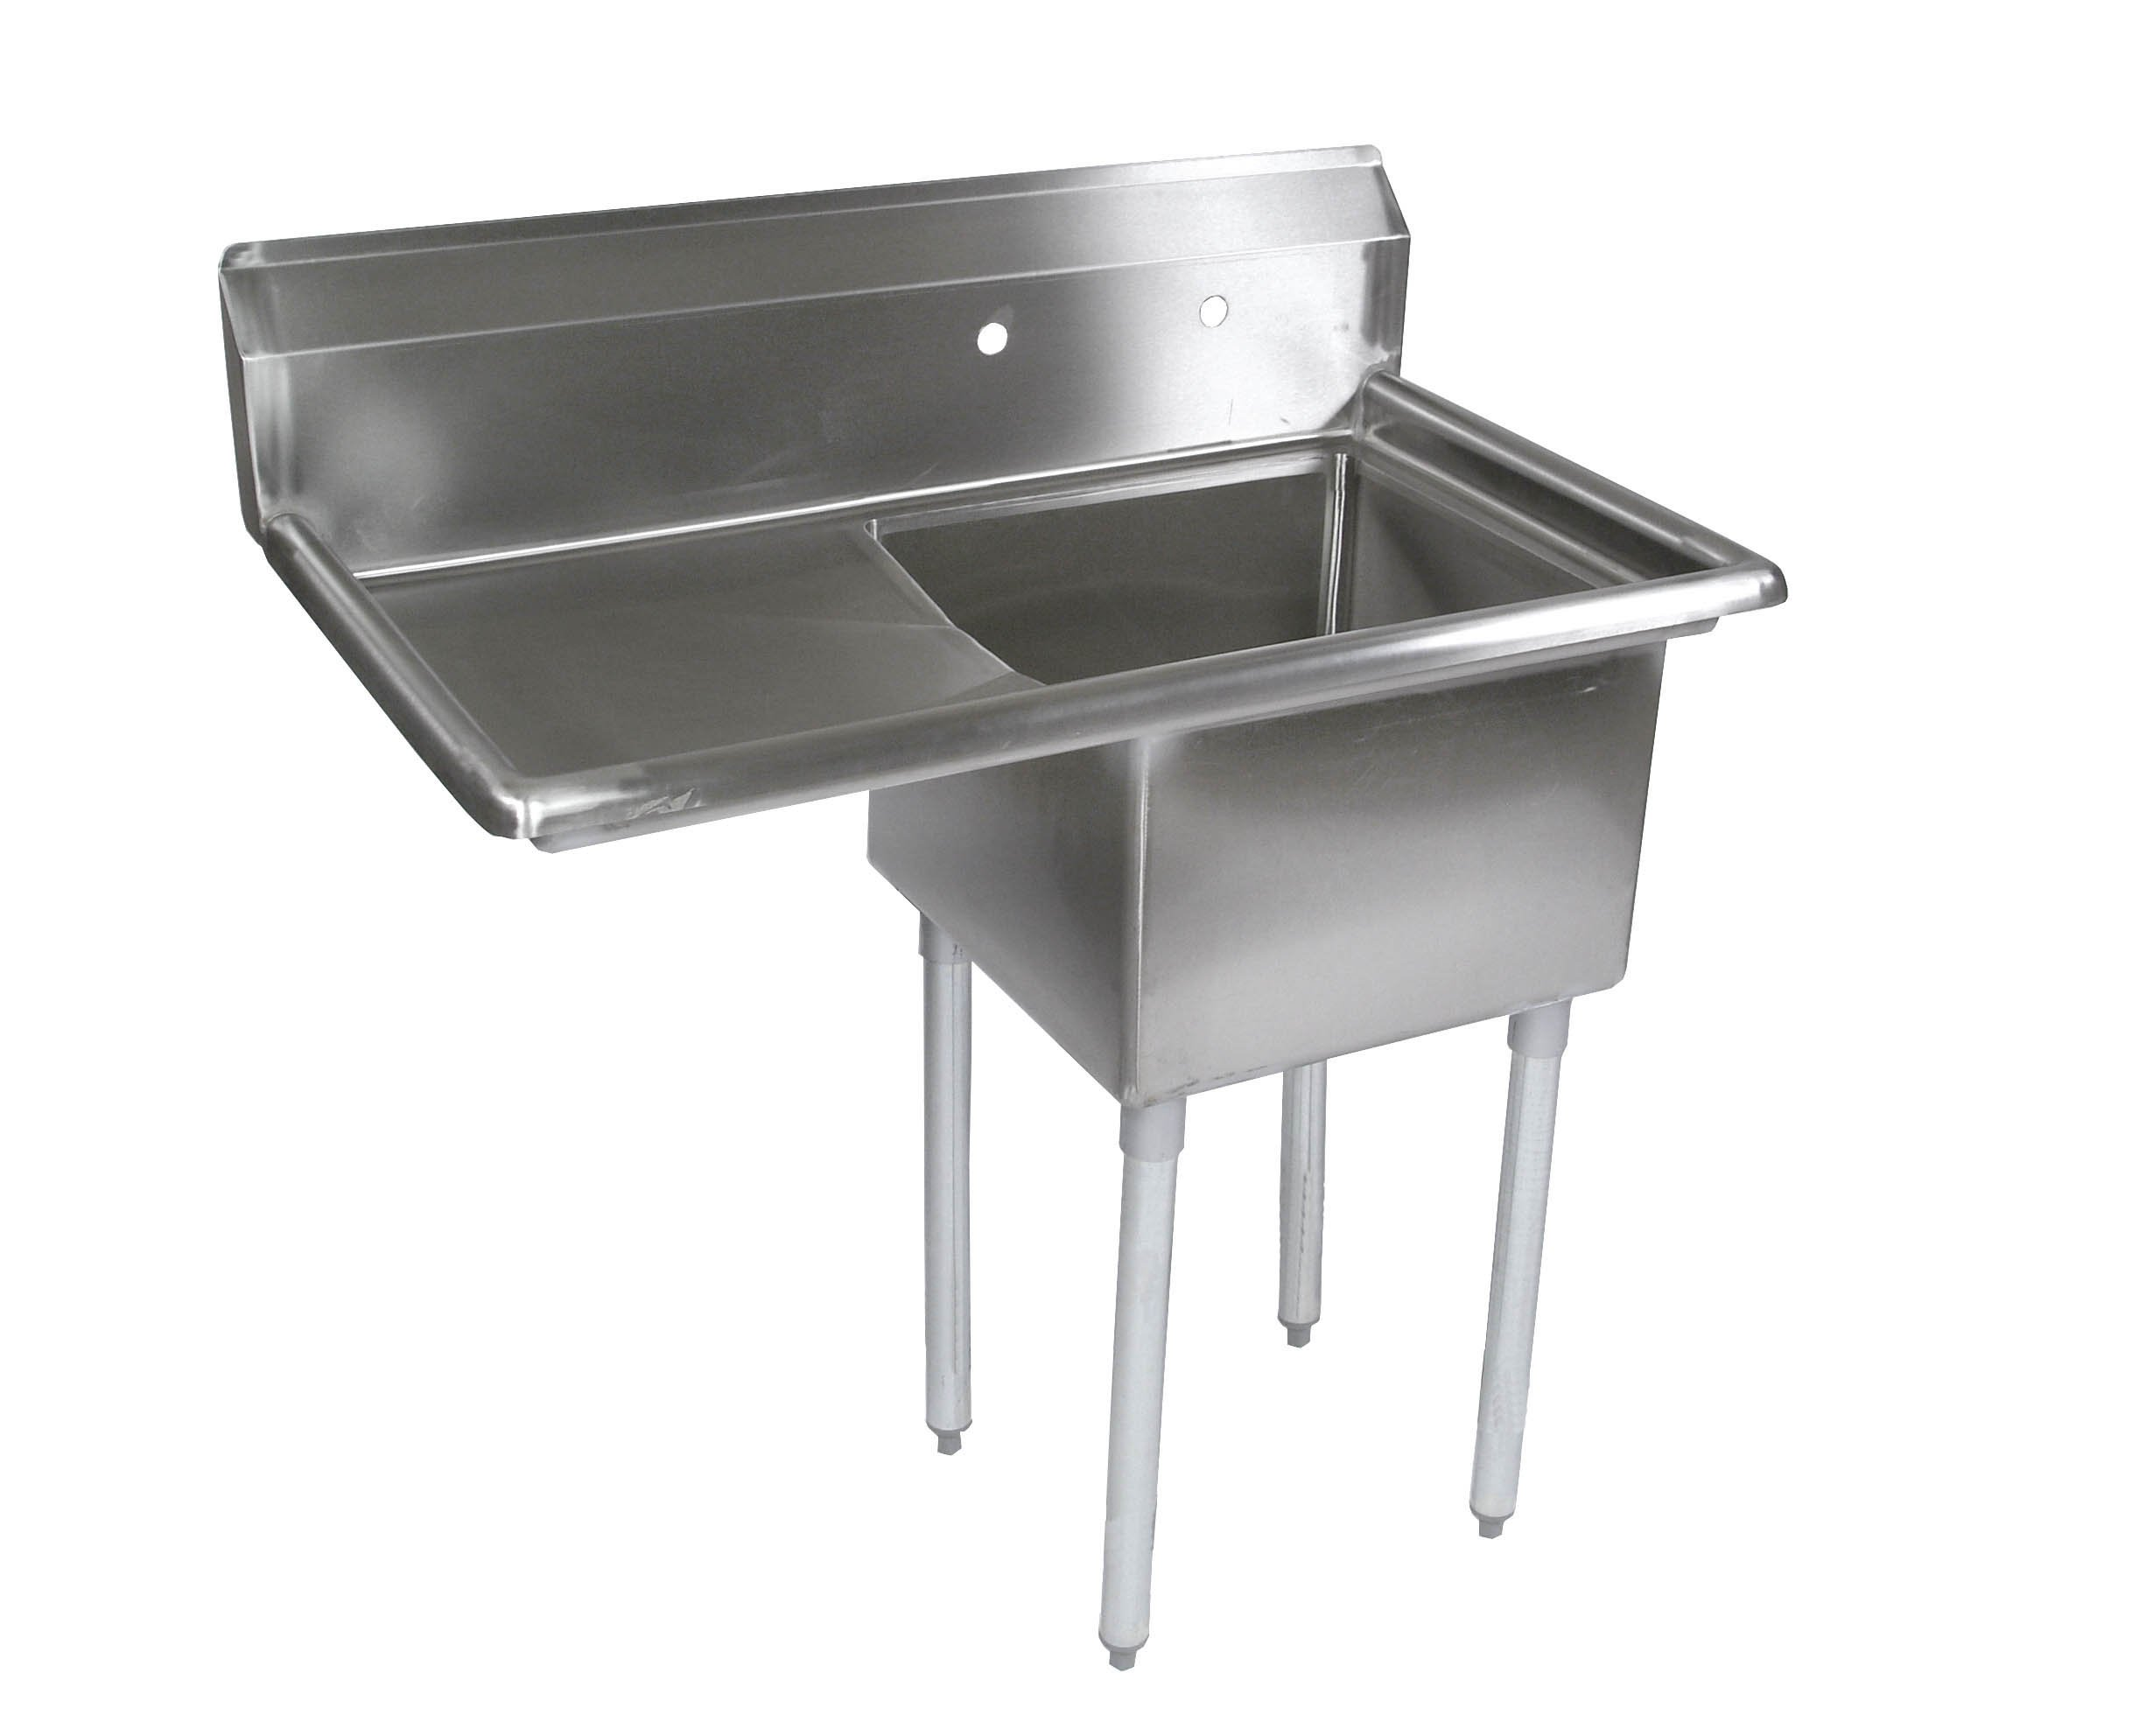 John Boos E Series Stainless Steel Sink, 12'' Deep Bowl, 1 Compartment, 18'' Left Hand Side Drainboard, 36-1/2'' Length x 25-1/2'' Width